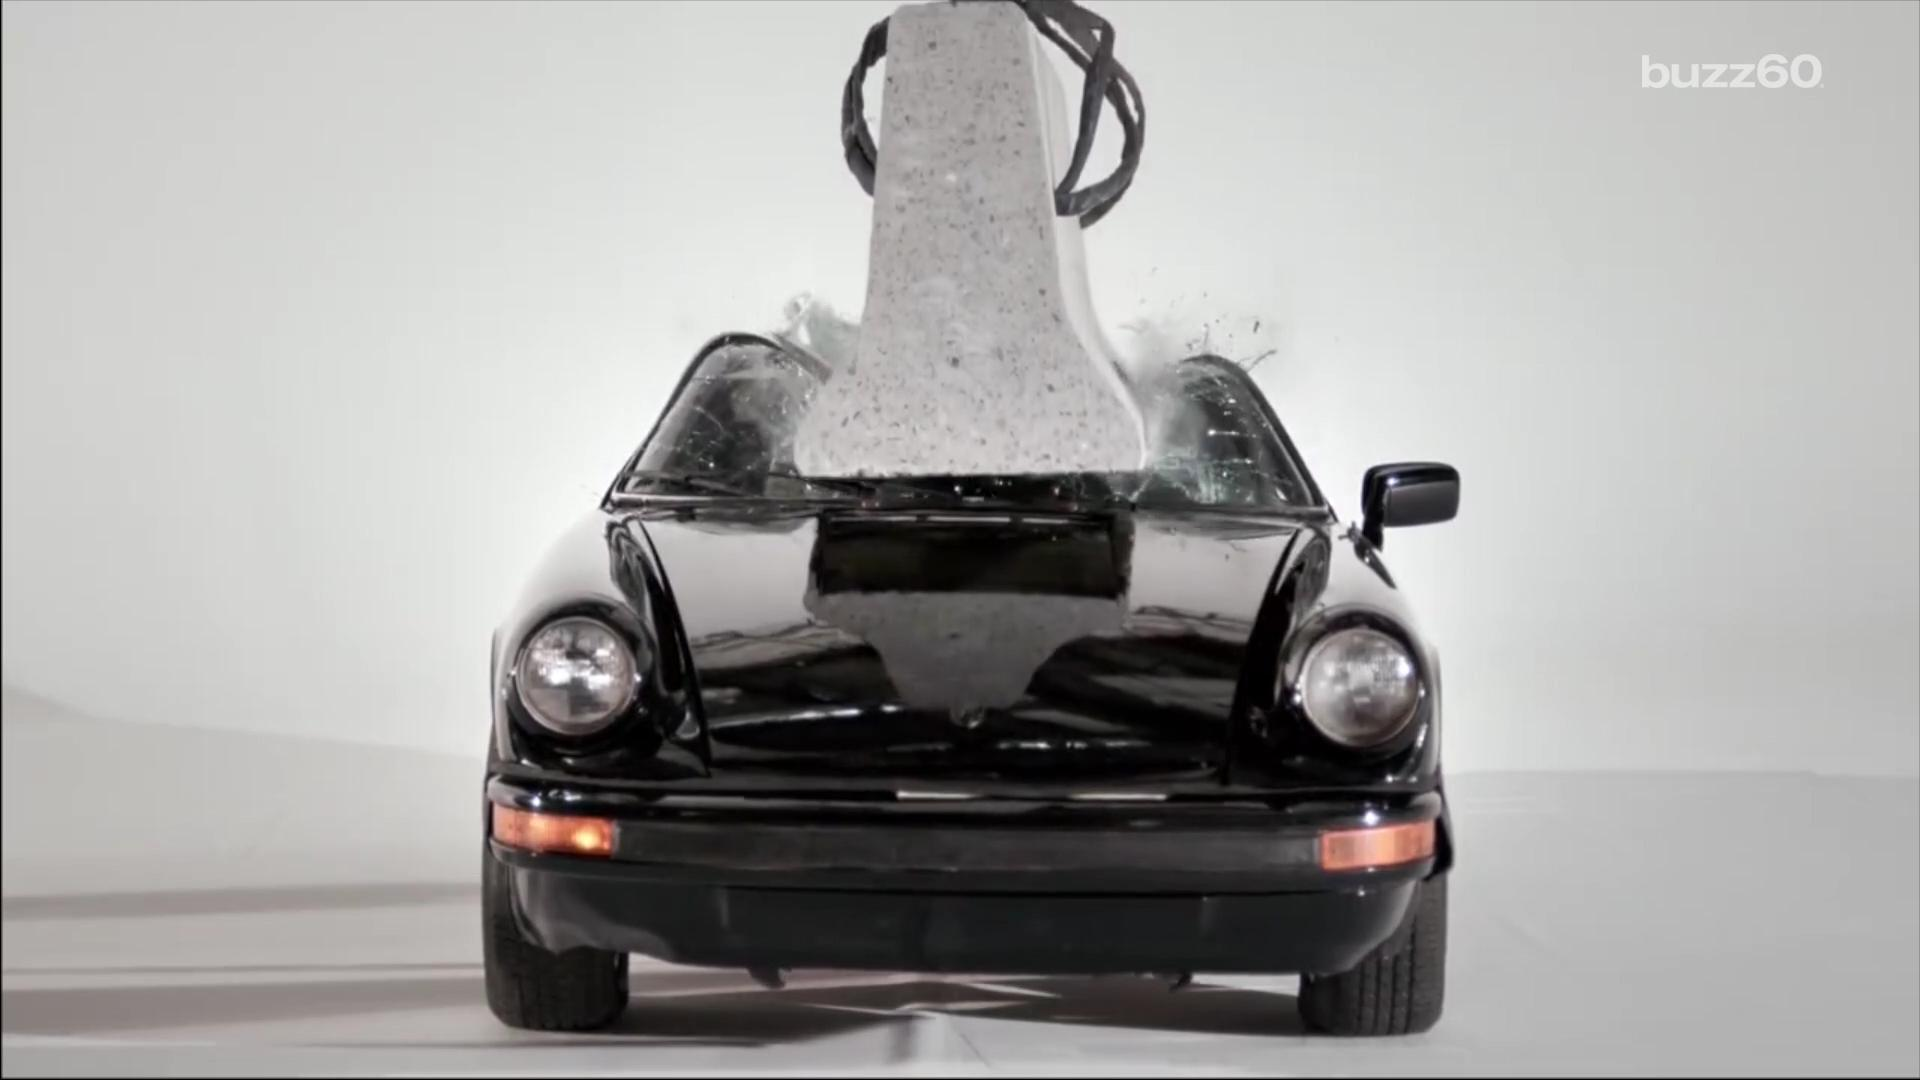 Porsche lovers are outraged by this Rag & Bone ad